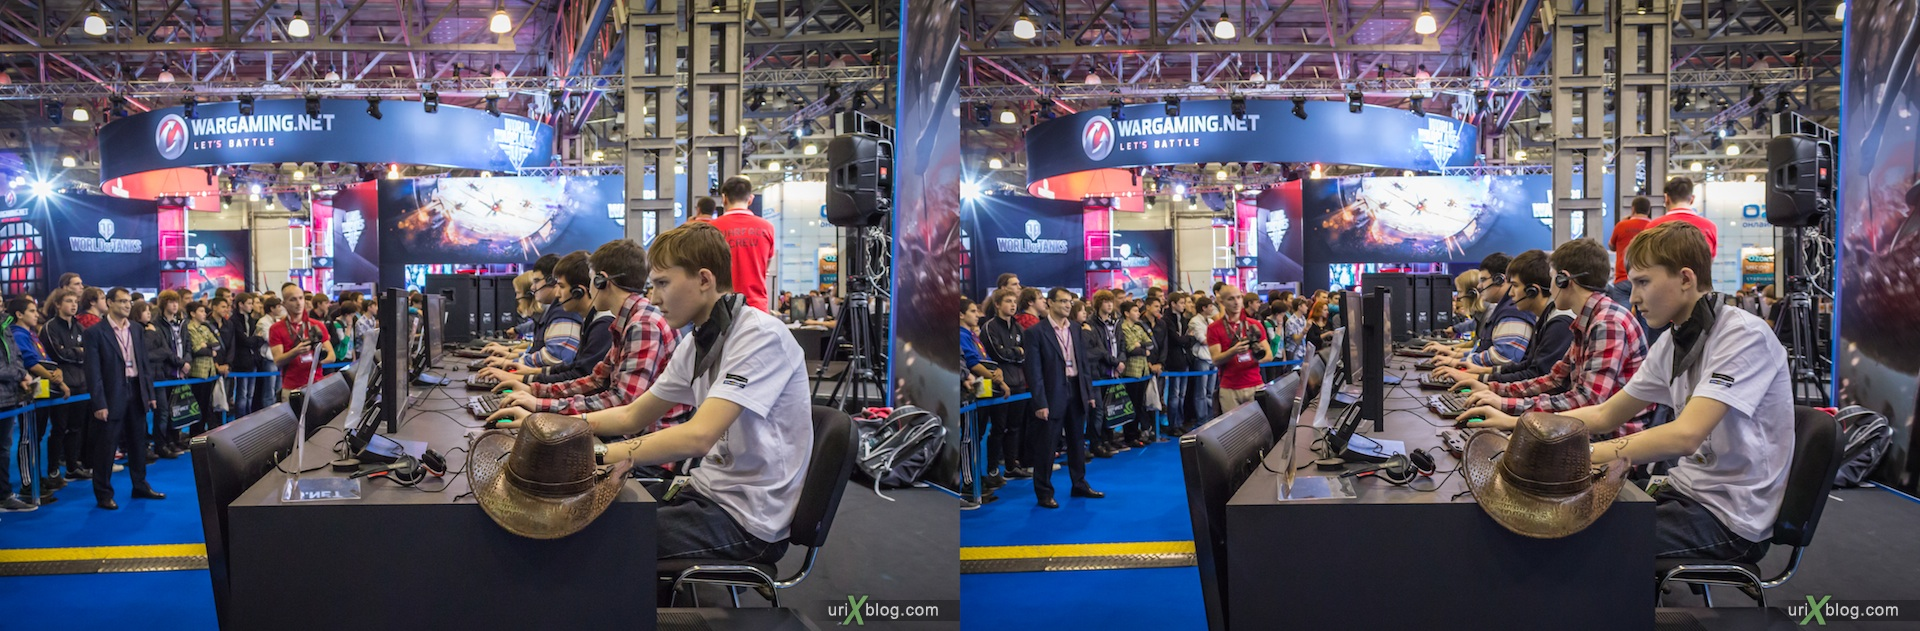 2012, Gameworld 2012 at Moscow, Crocus Expo, 3D, stereo pair, cross-eyed, crossview, cross view stereo pair